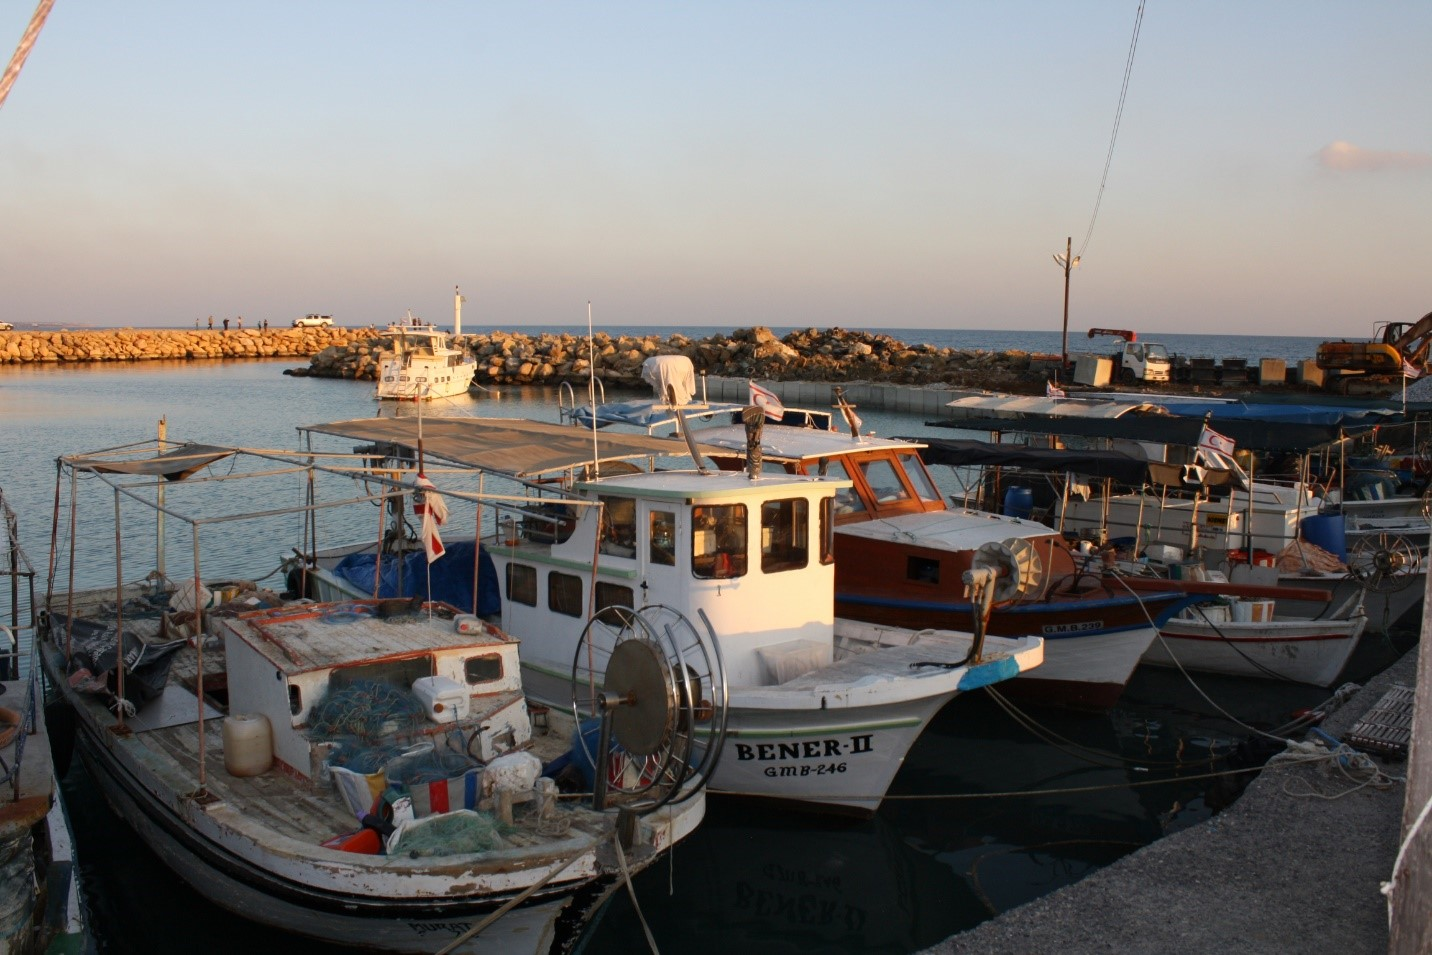 Fishing boats lining the docks in Bogaz Harbour